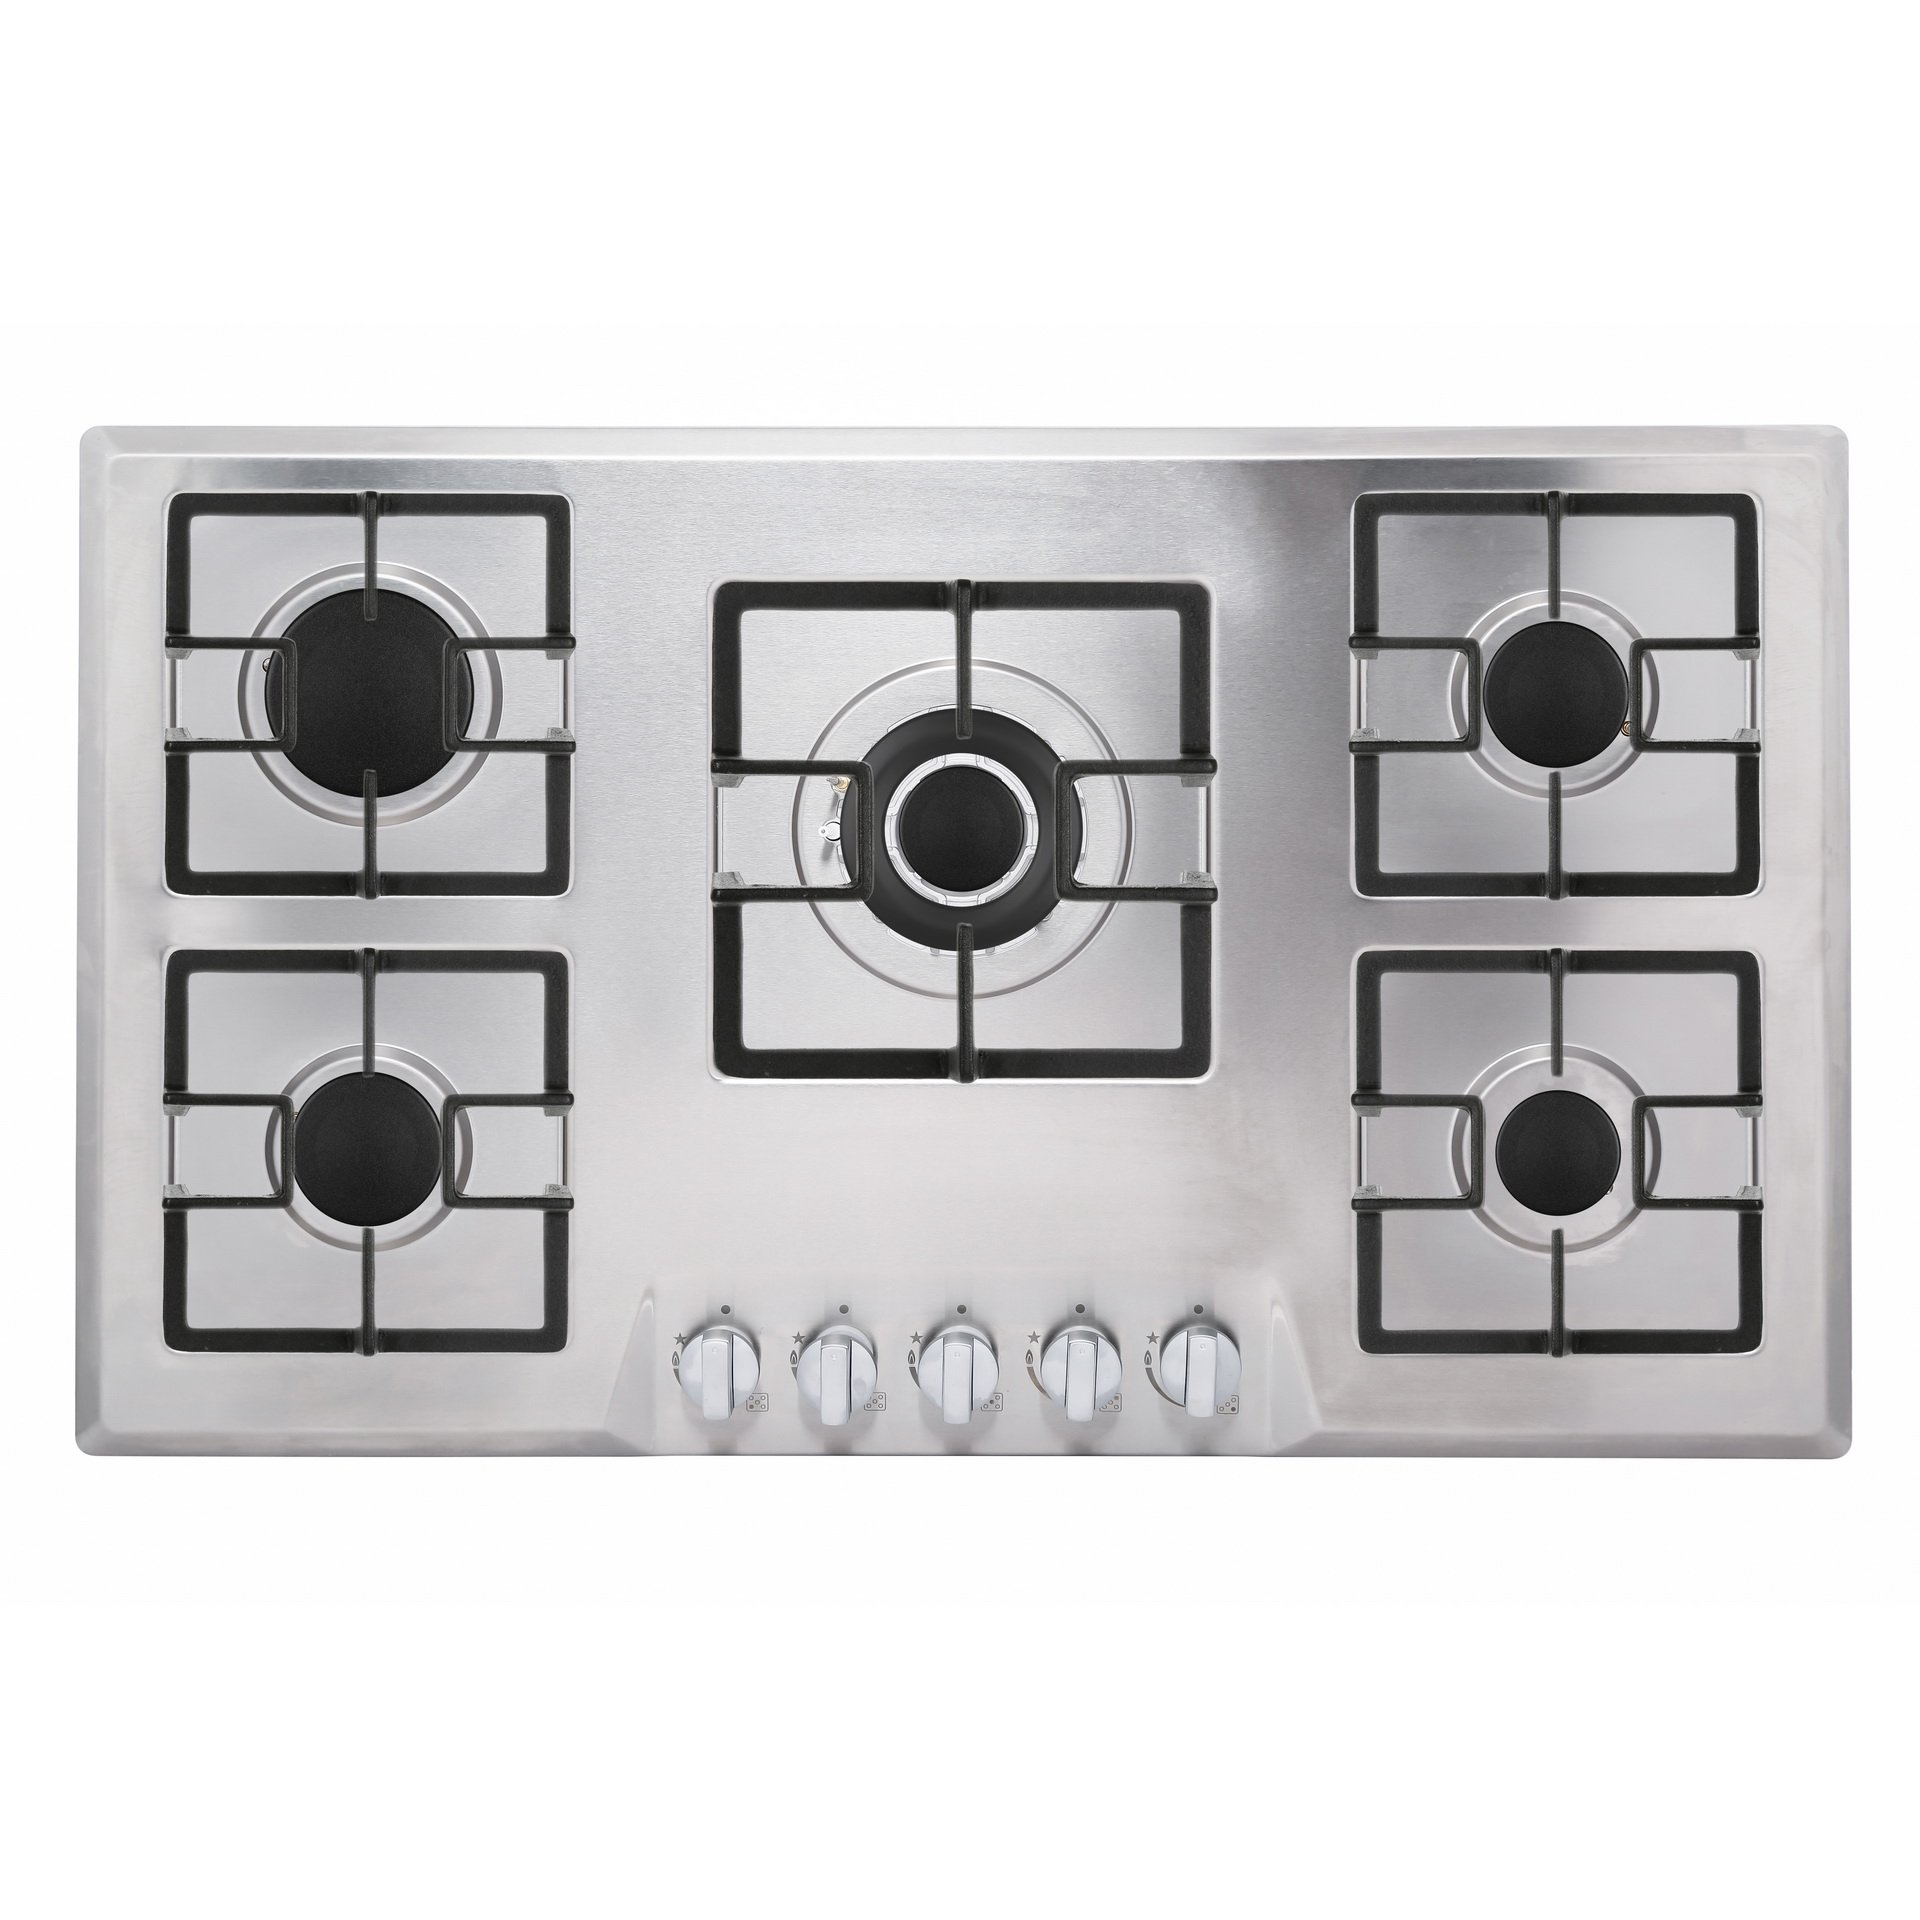 Empava 34'' Stainless Steel Built-in 5 Italy Sabaf Burners Stove Top Gas Cooktop EMPV-34GC5B90A by Empava (Image #3)